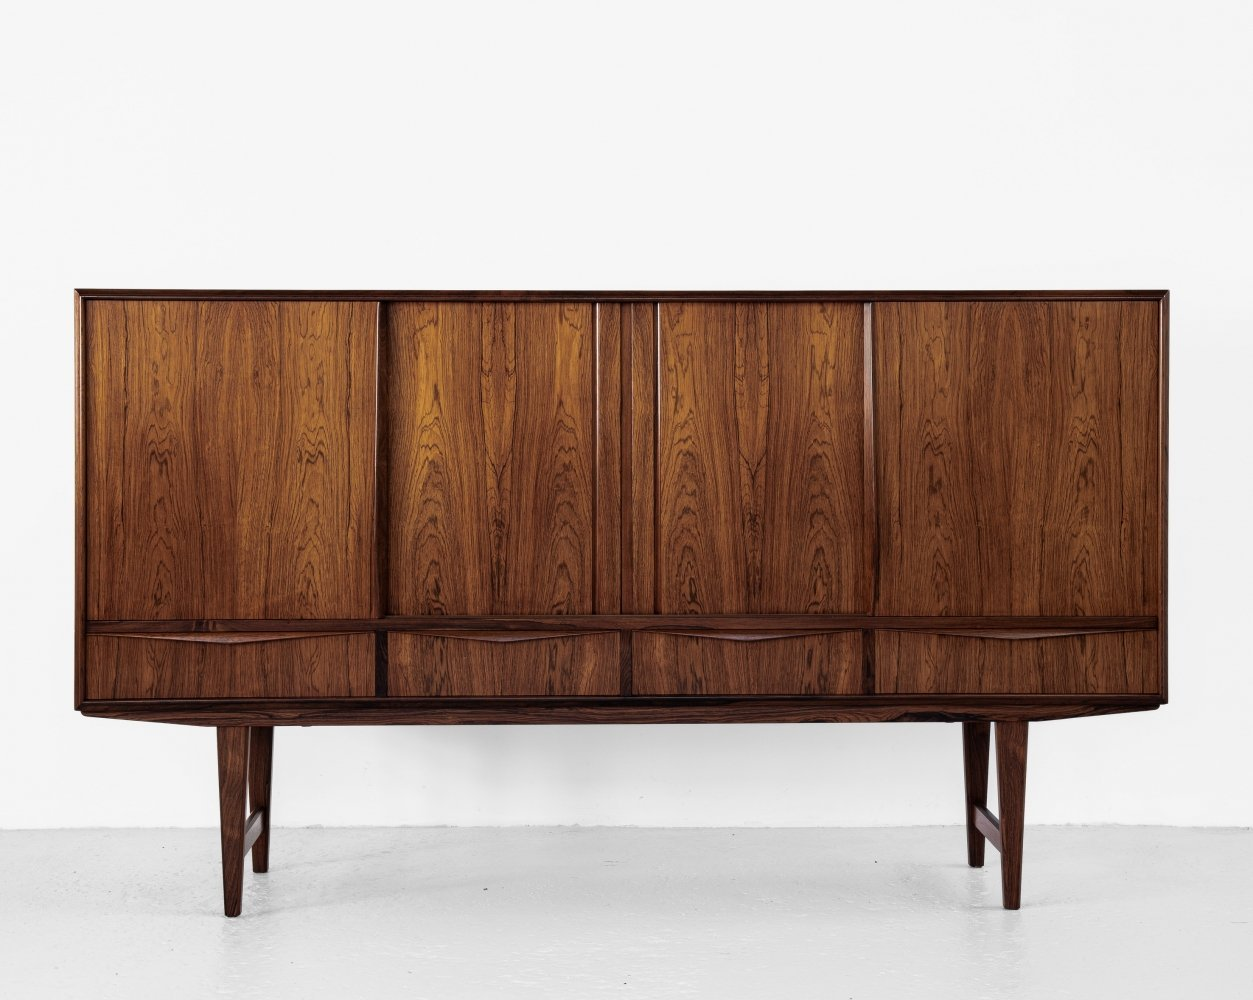 Midcentury Danish highboard in rosewood by E.W. Bach for Sejling Skabe, 1960s